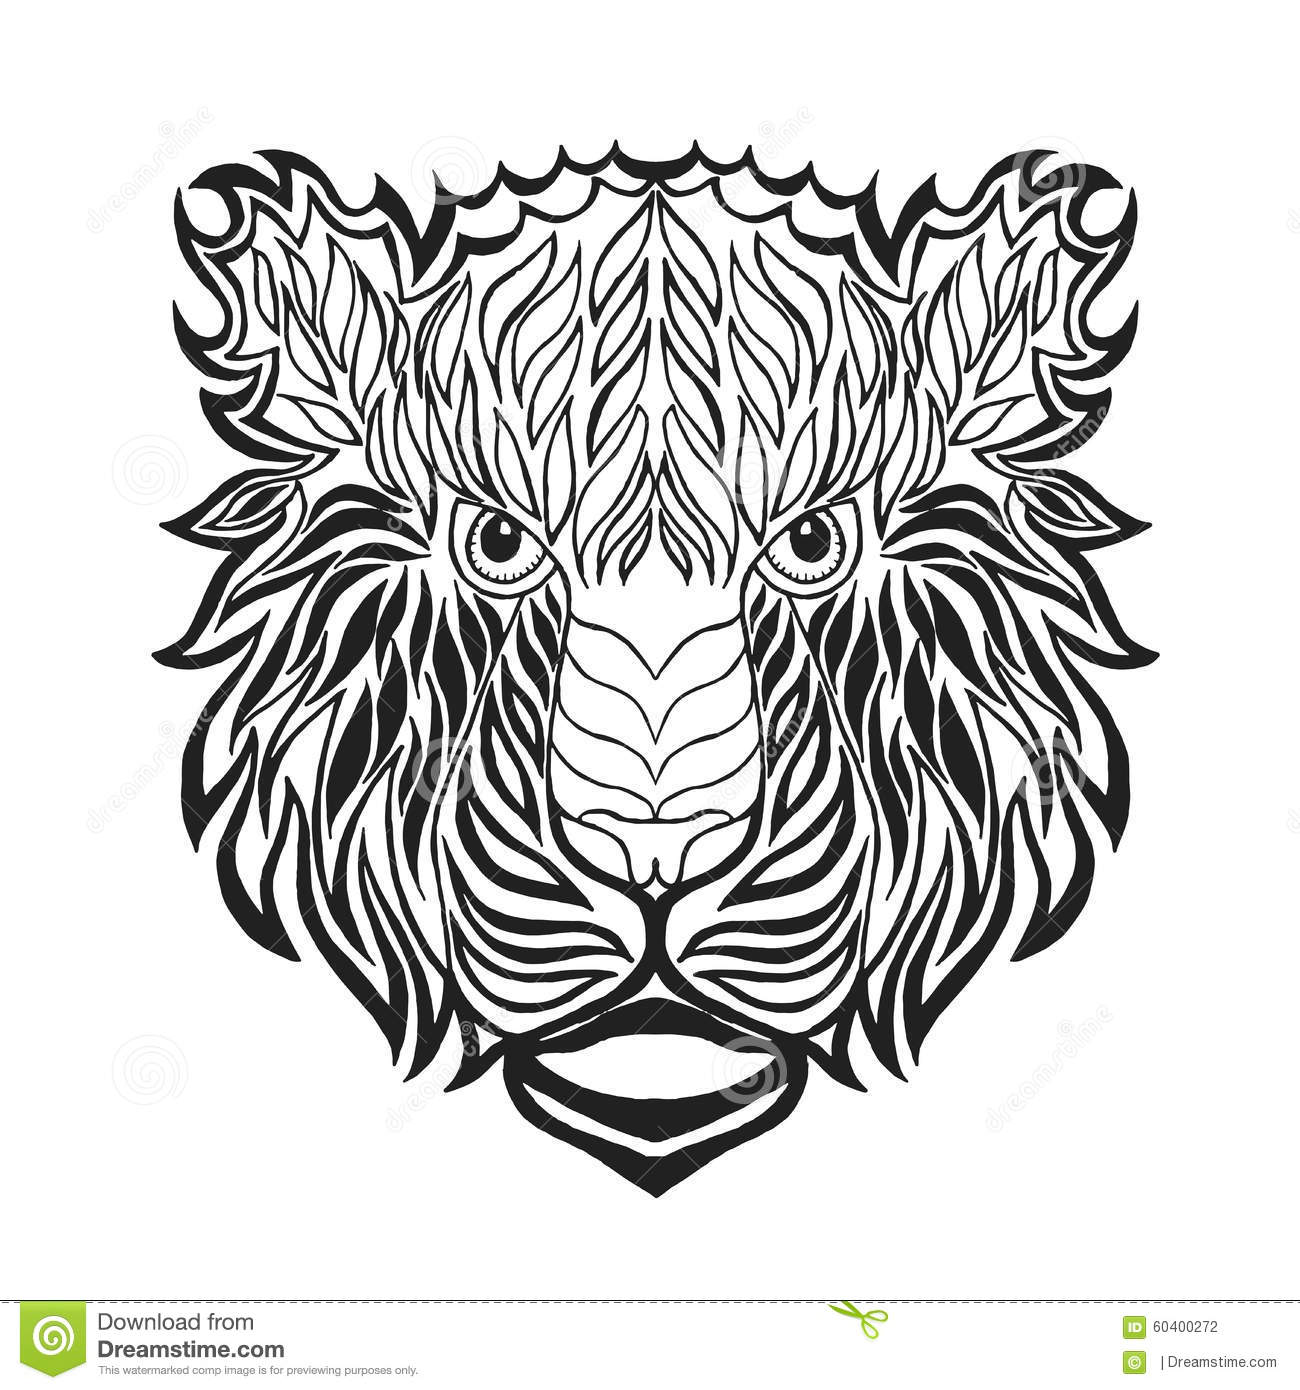 Download Zentangle Stylized Tiger Head Sketch For Tattoo Or T Shirt Stock Vector